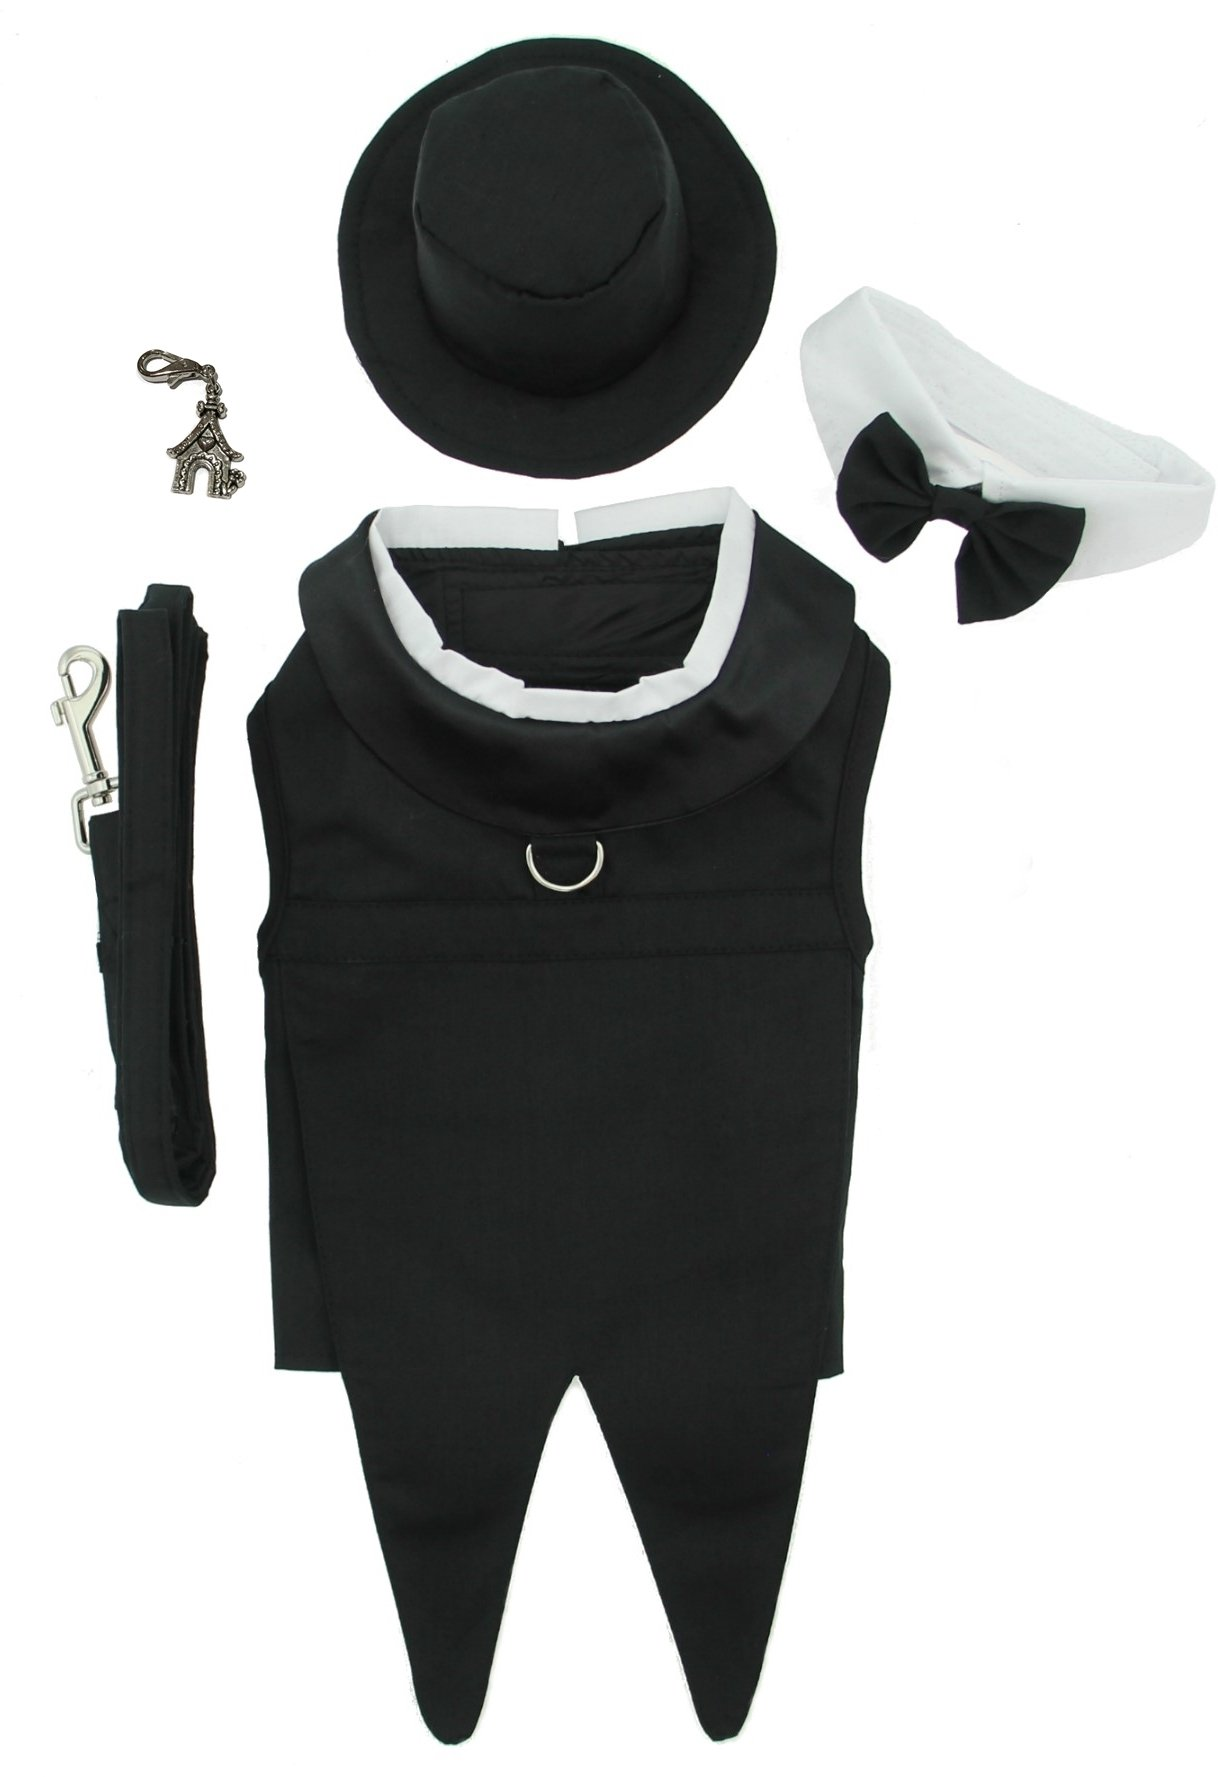 DOGGIE DESIGN Formal Wedding Tuxedo Harness Suit with Clip Charm - Hat and Leash - Black Tails - for Dog Size (L- Chest 19-21'', Neck 14-17'', Black Formal) by DOGGIE DESIGN